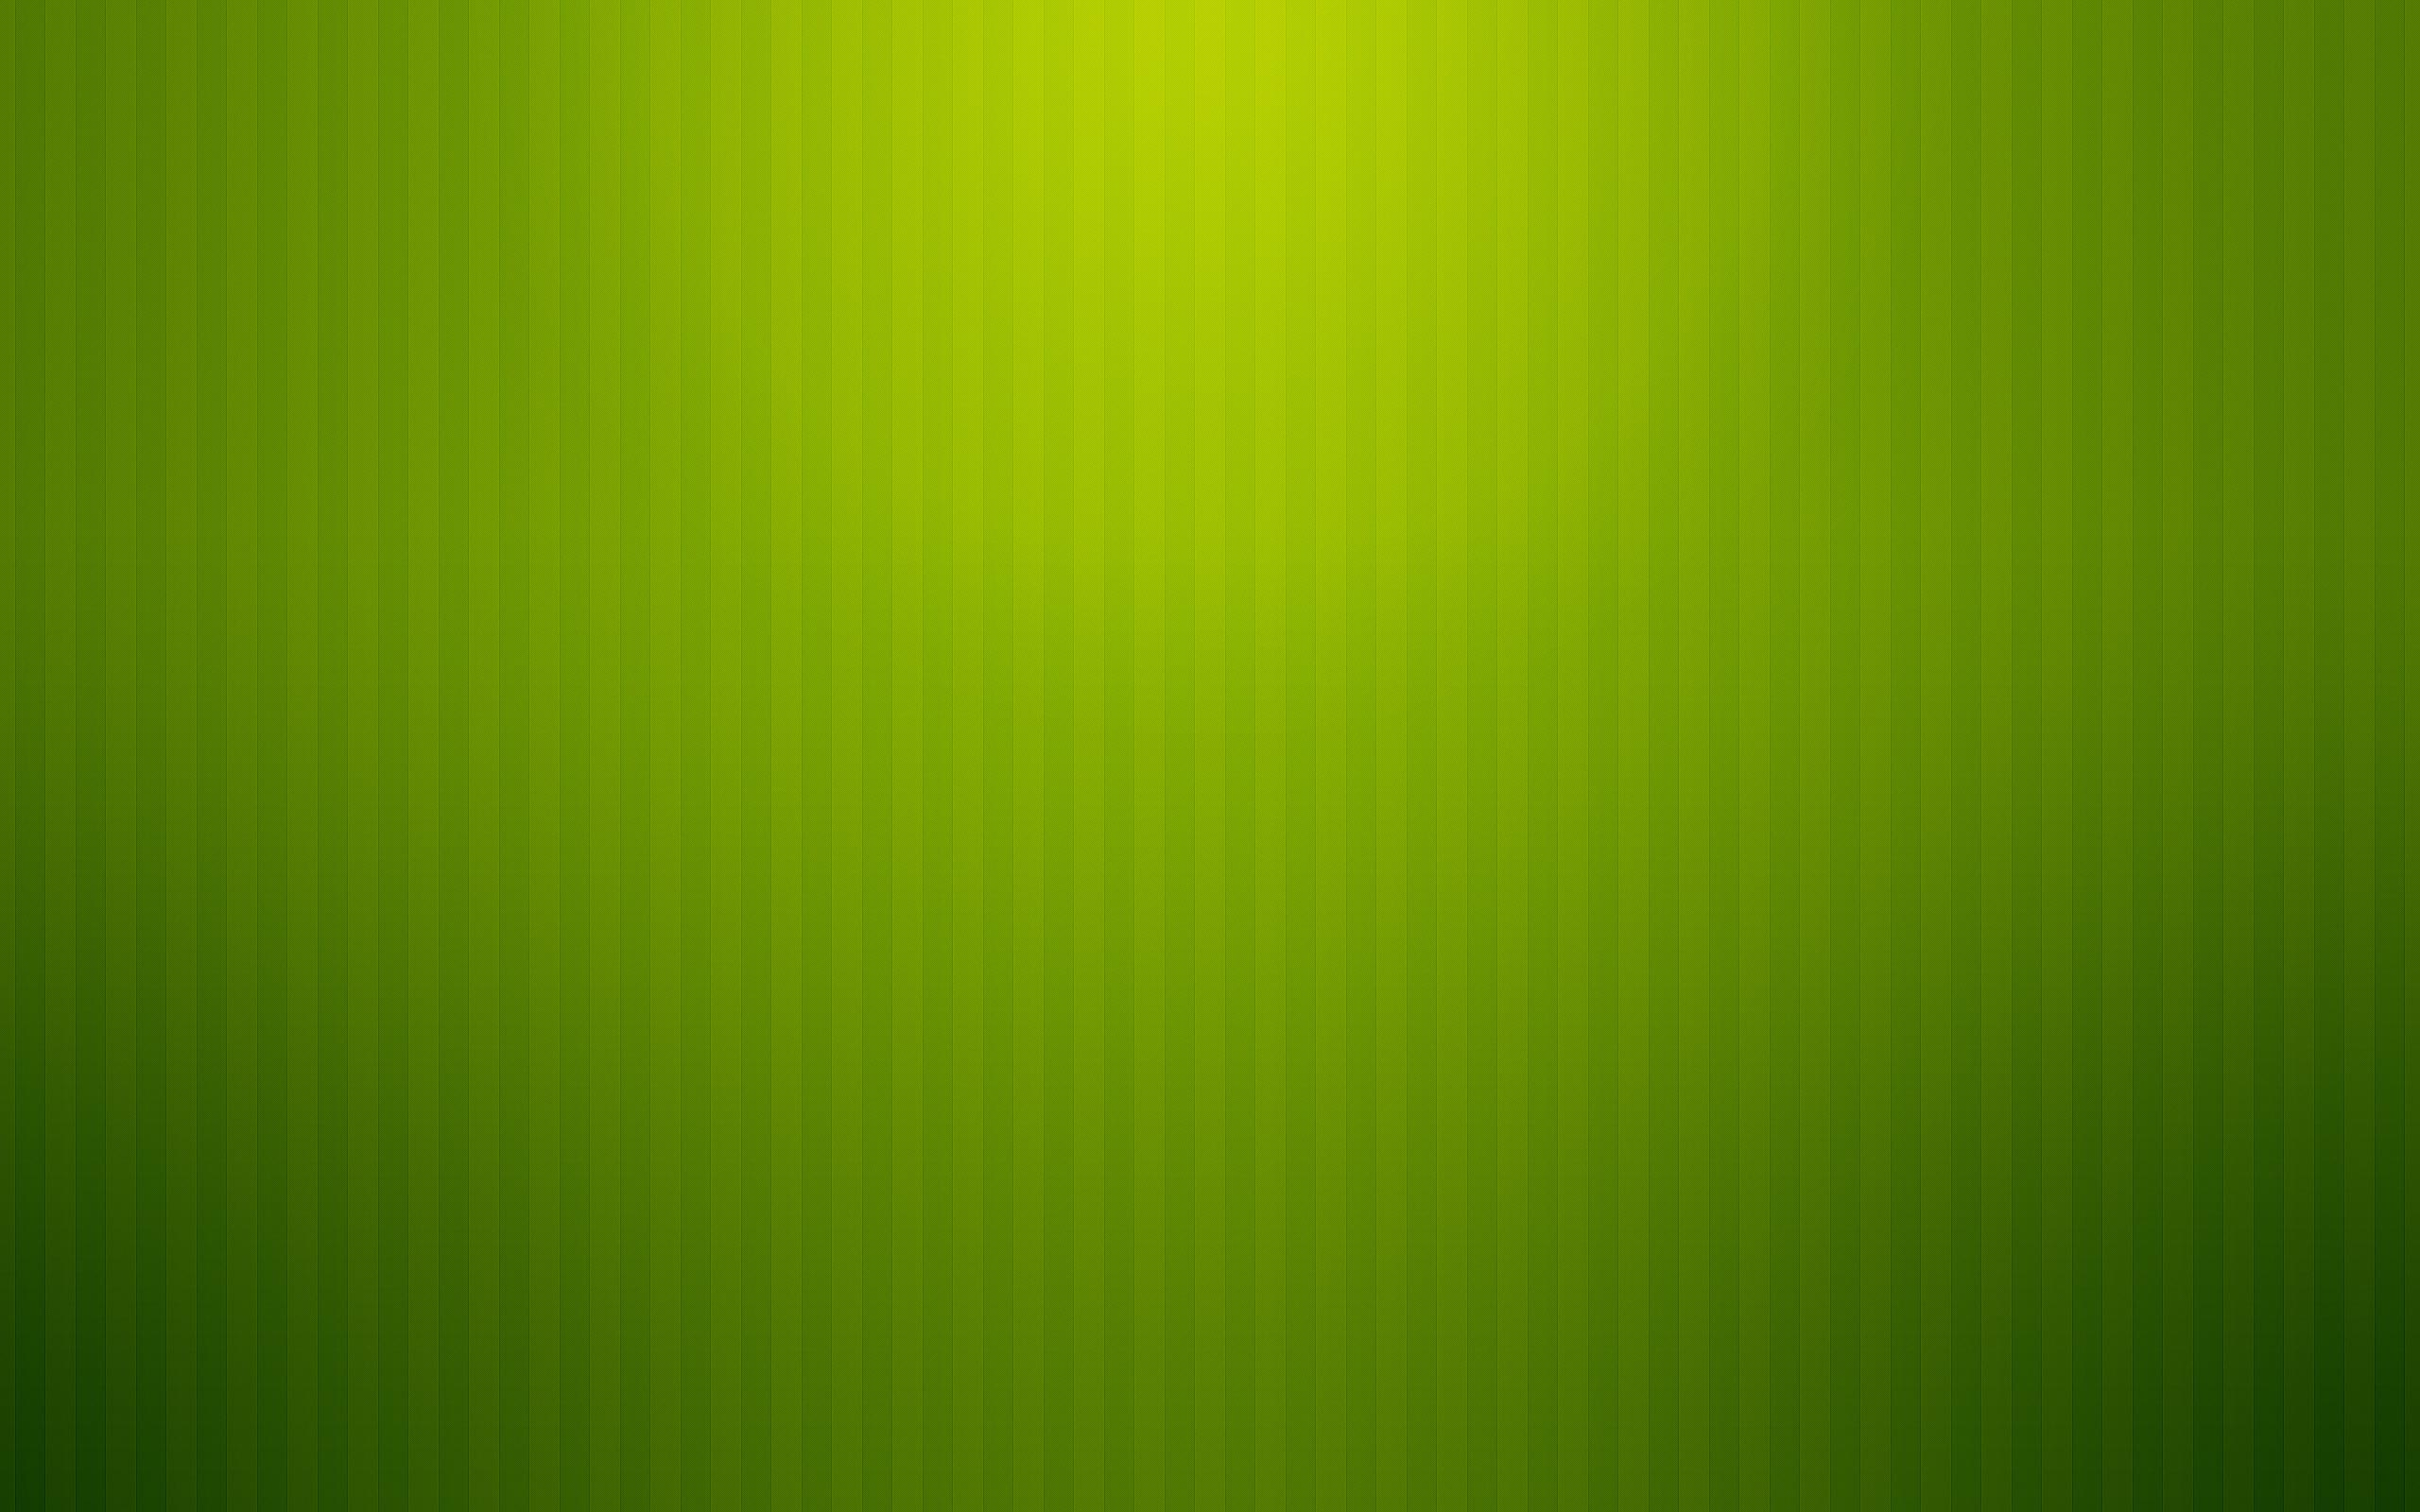 Free Green Background 21873 1920x1080 px